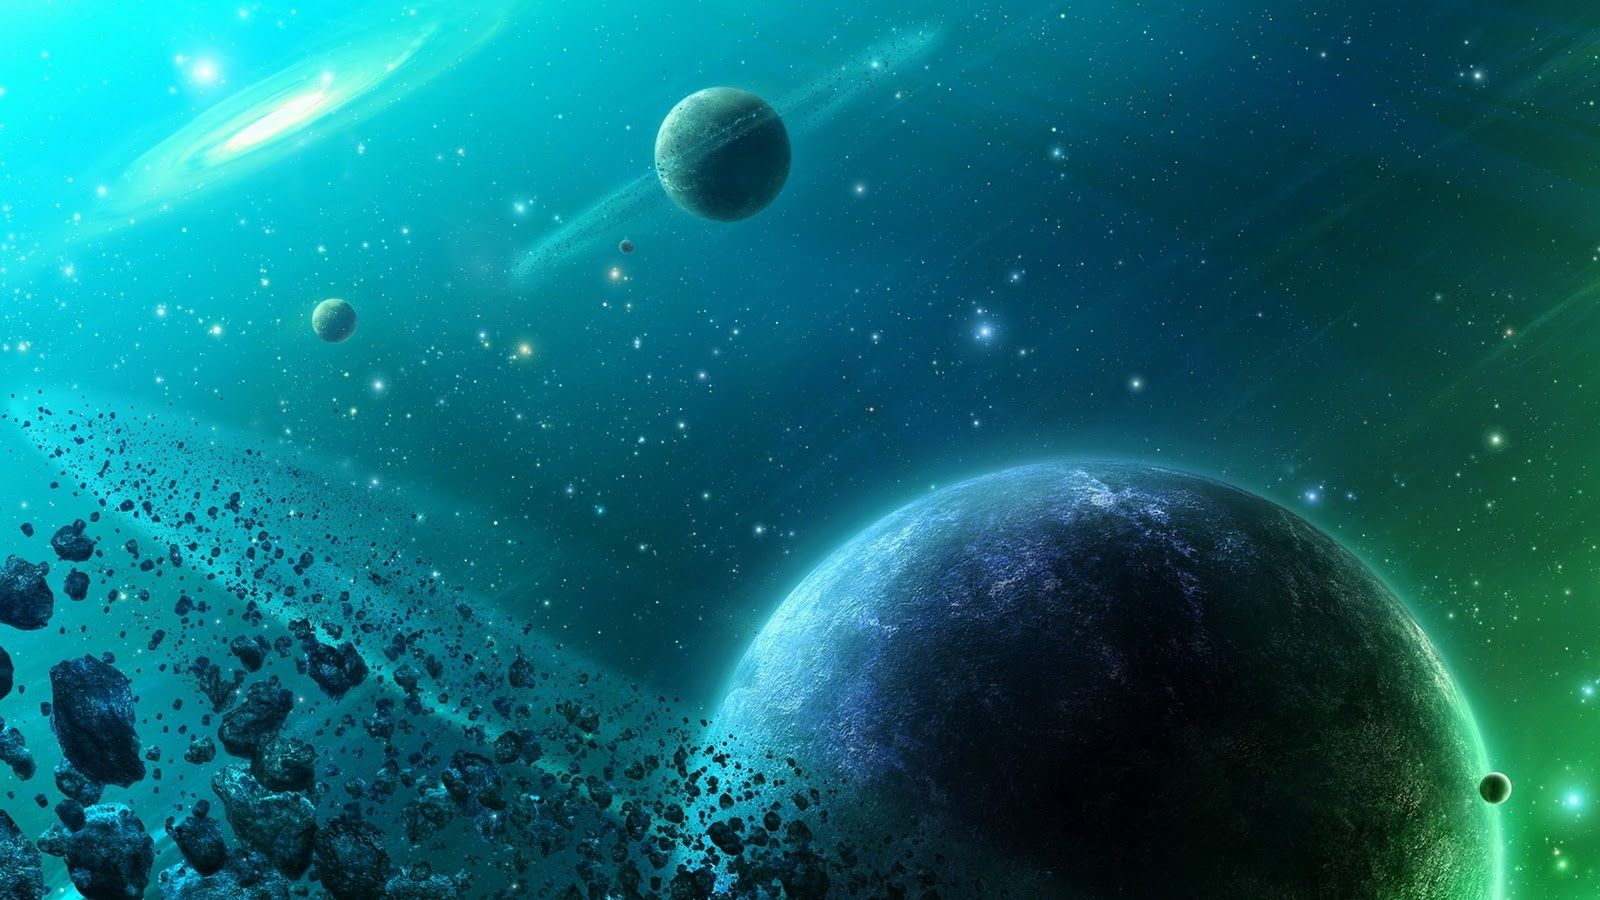 3D Space HD Desktop Wallpapers | Cool backgrounds ...